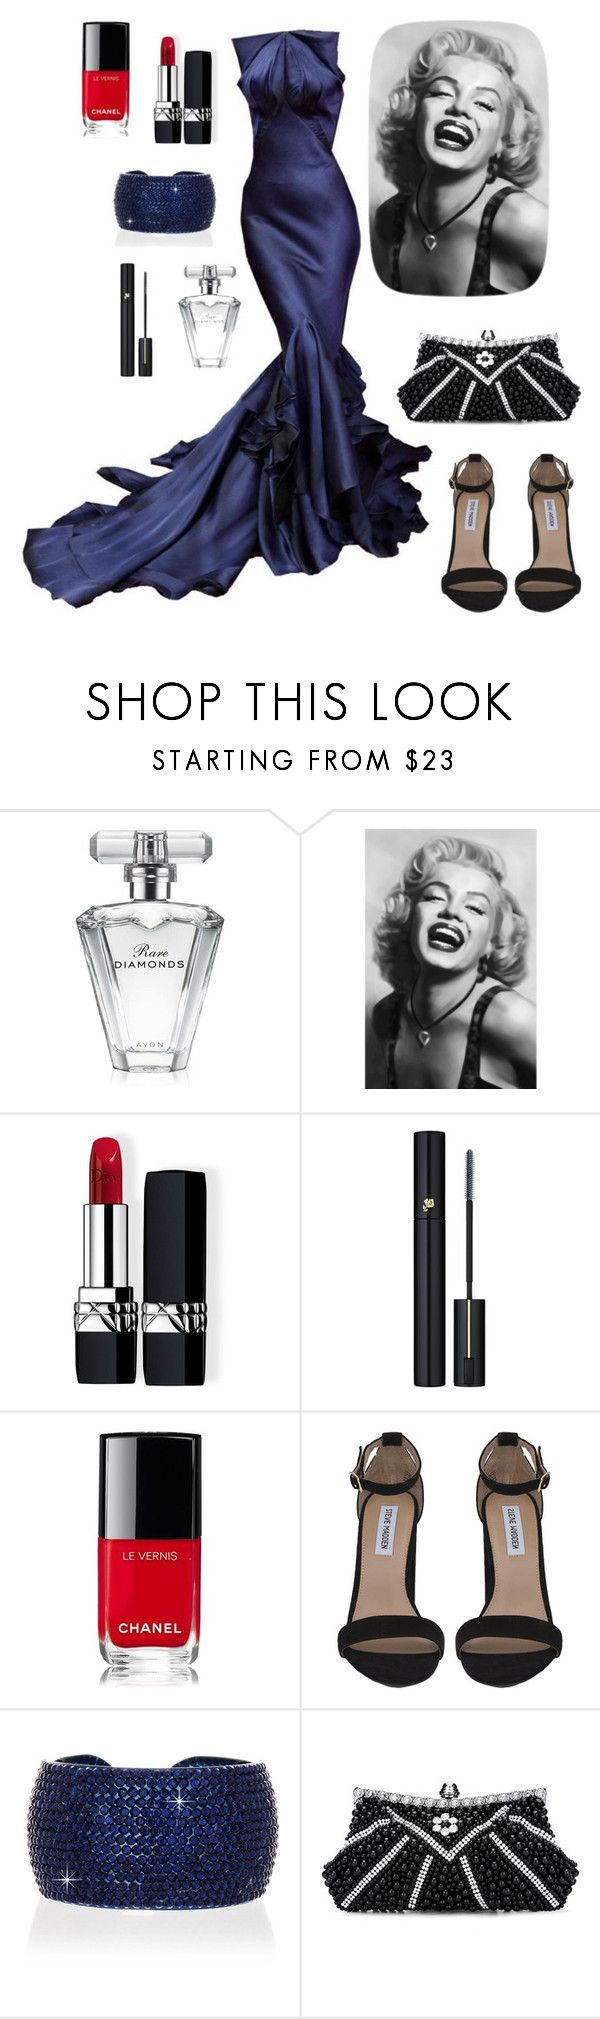 """Old Hollywood Style # 17"" by sunshine24-7-1 ❤ liked on Polyvore featuring Zac Posen, Avon, Brewster Home Fashions, Christian Dior, Lancôme, Chanel, Steve Madden and Vanity Her"